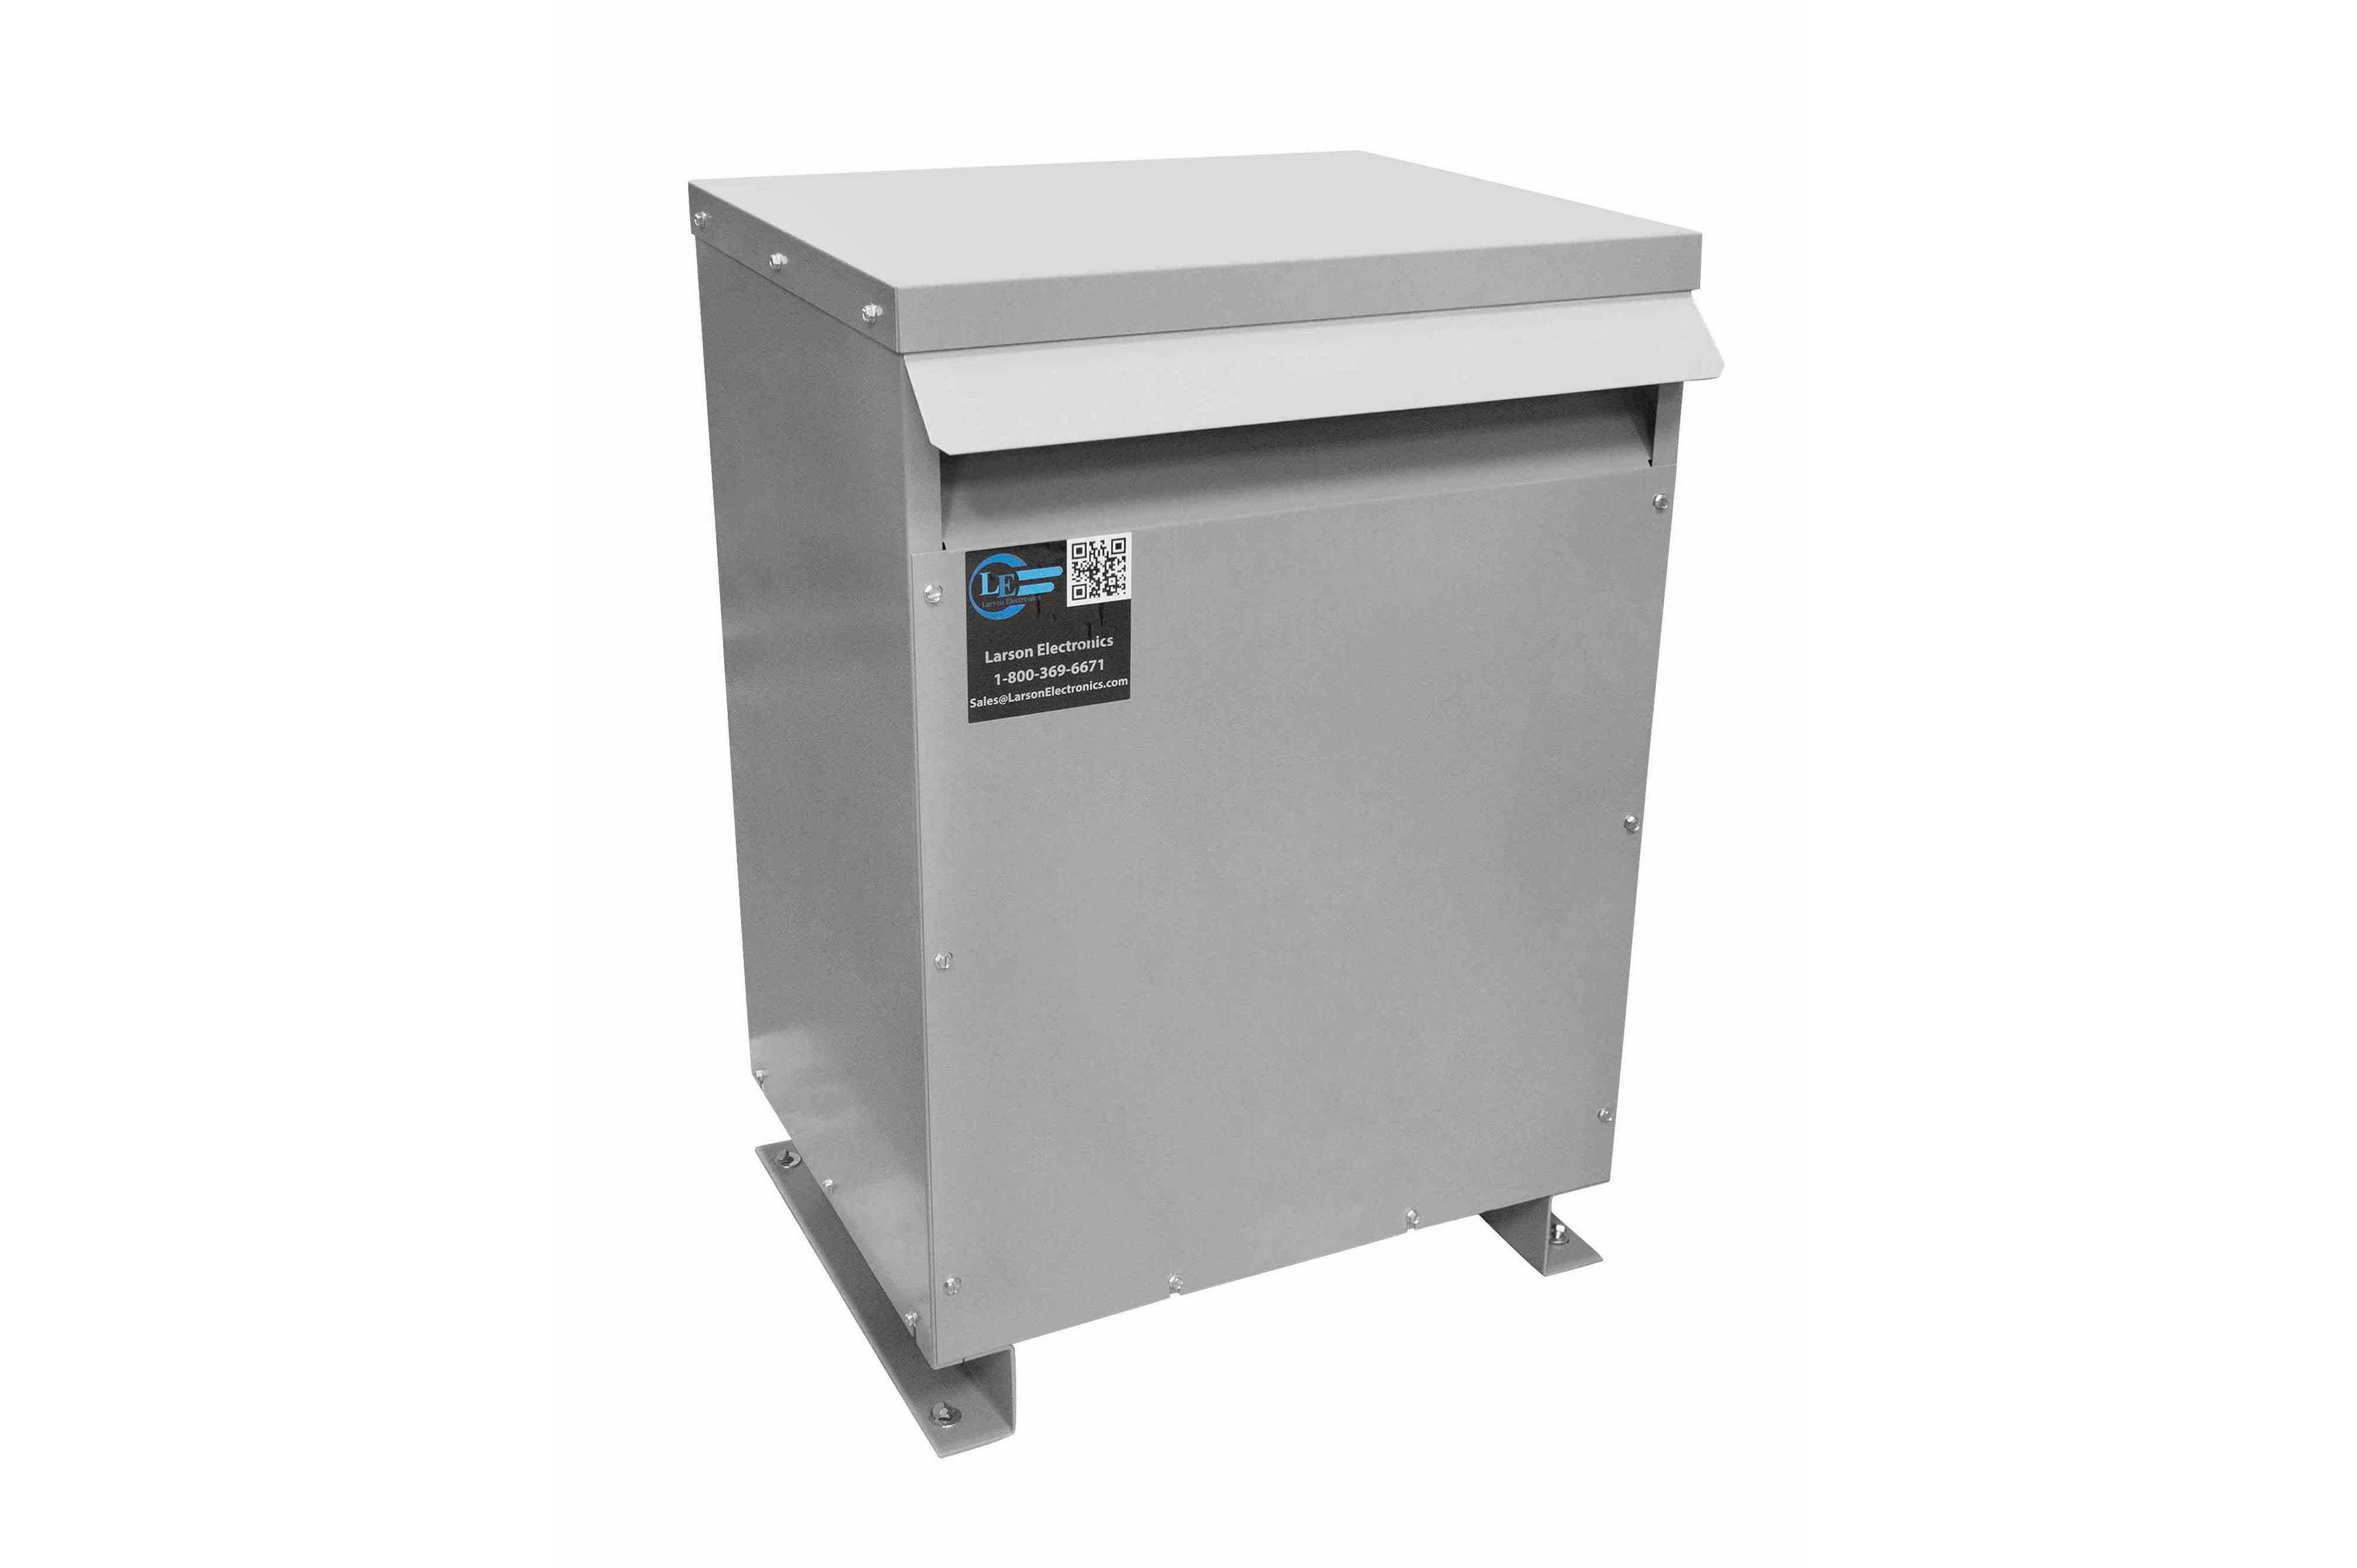 800 kVA 3PH Isolation Transformer, 480V Wye Primary, 400Y/231 Wye-N Secondary, N3R, Ventilated, 60 Hz